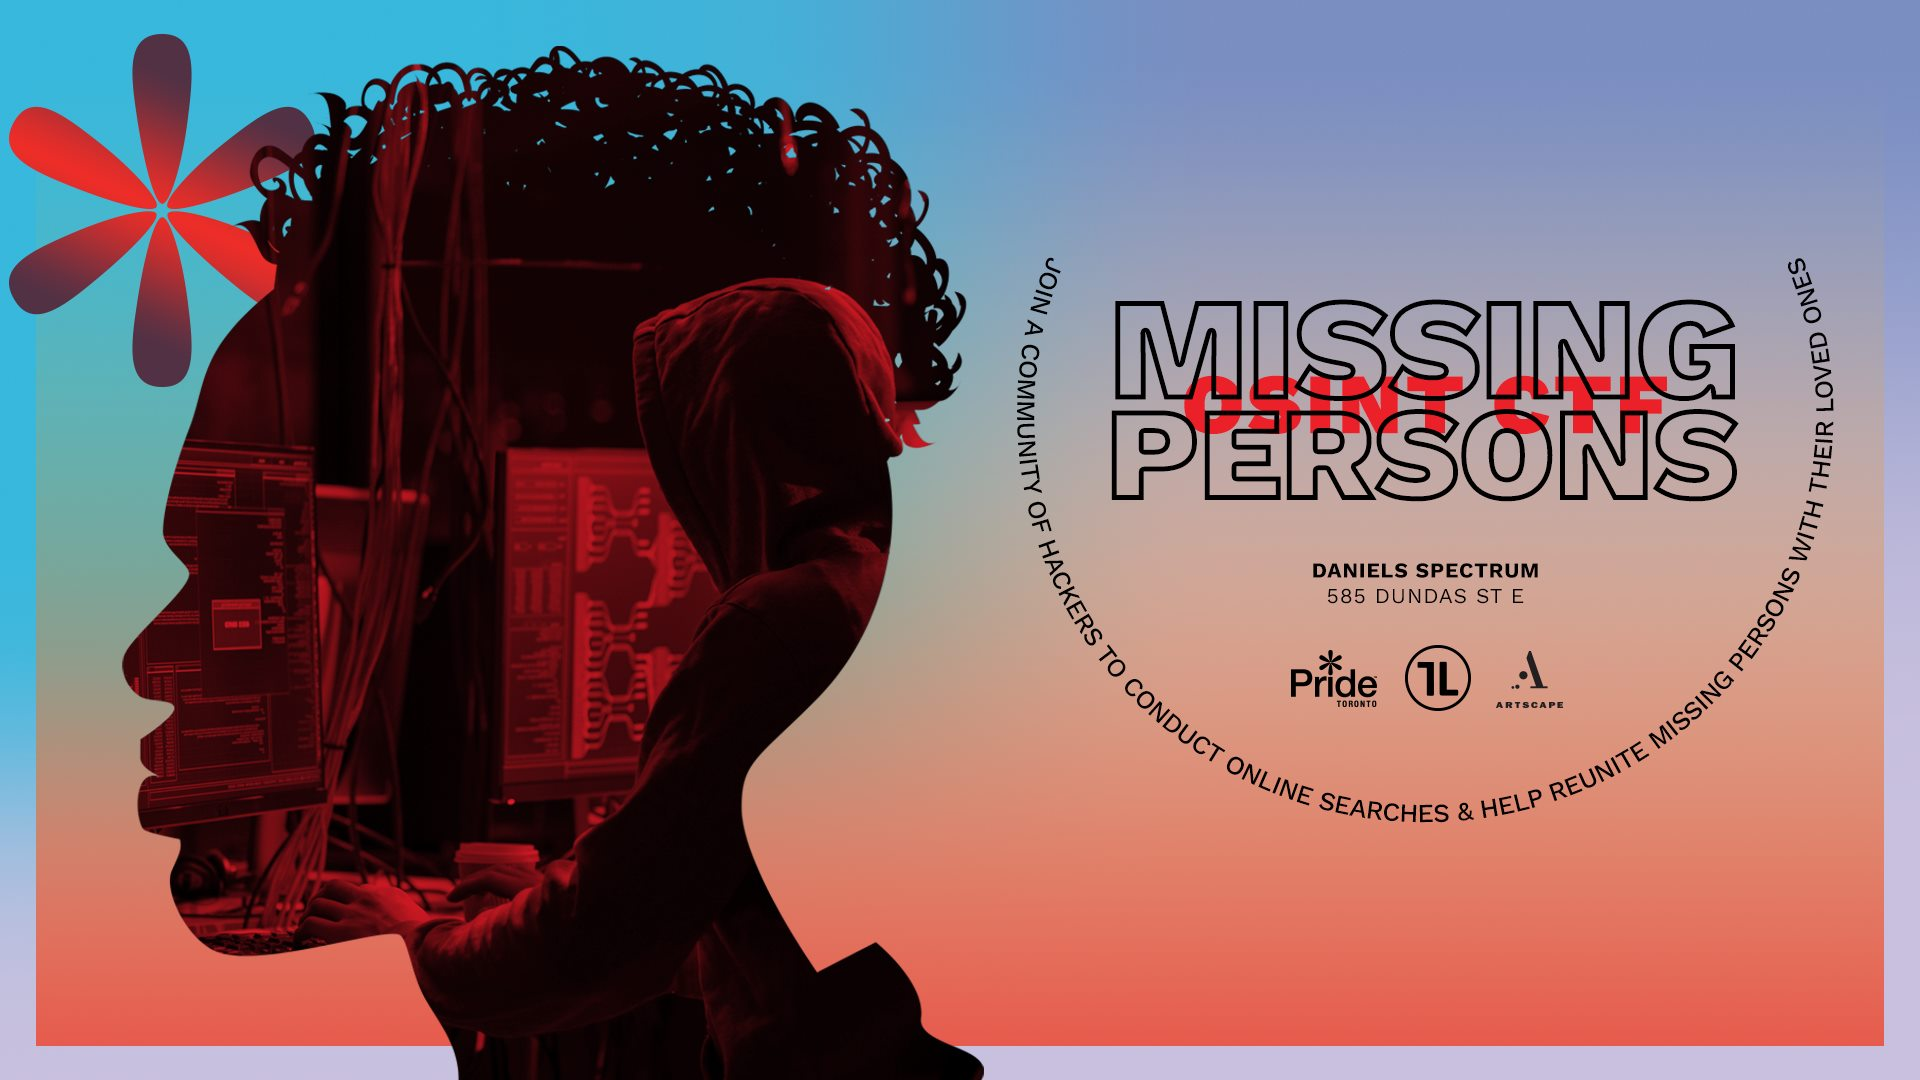 QueerEvents.ca - Toronto event listing - Pride Toronto - Missing Persons event listing